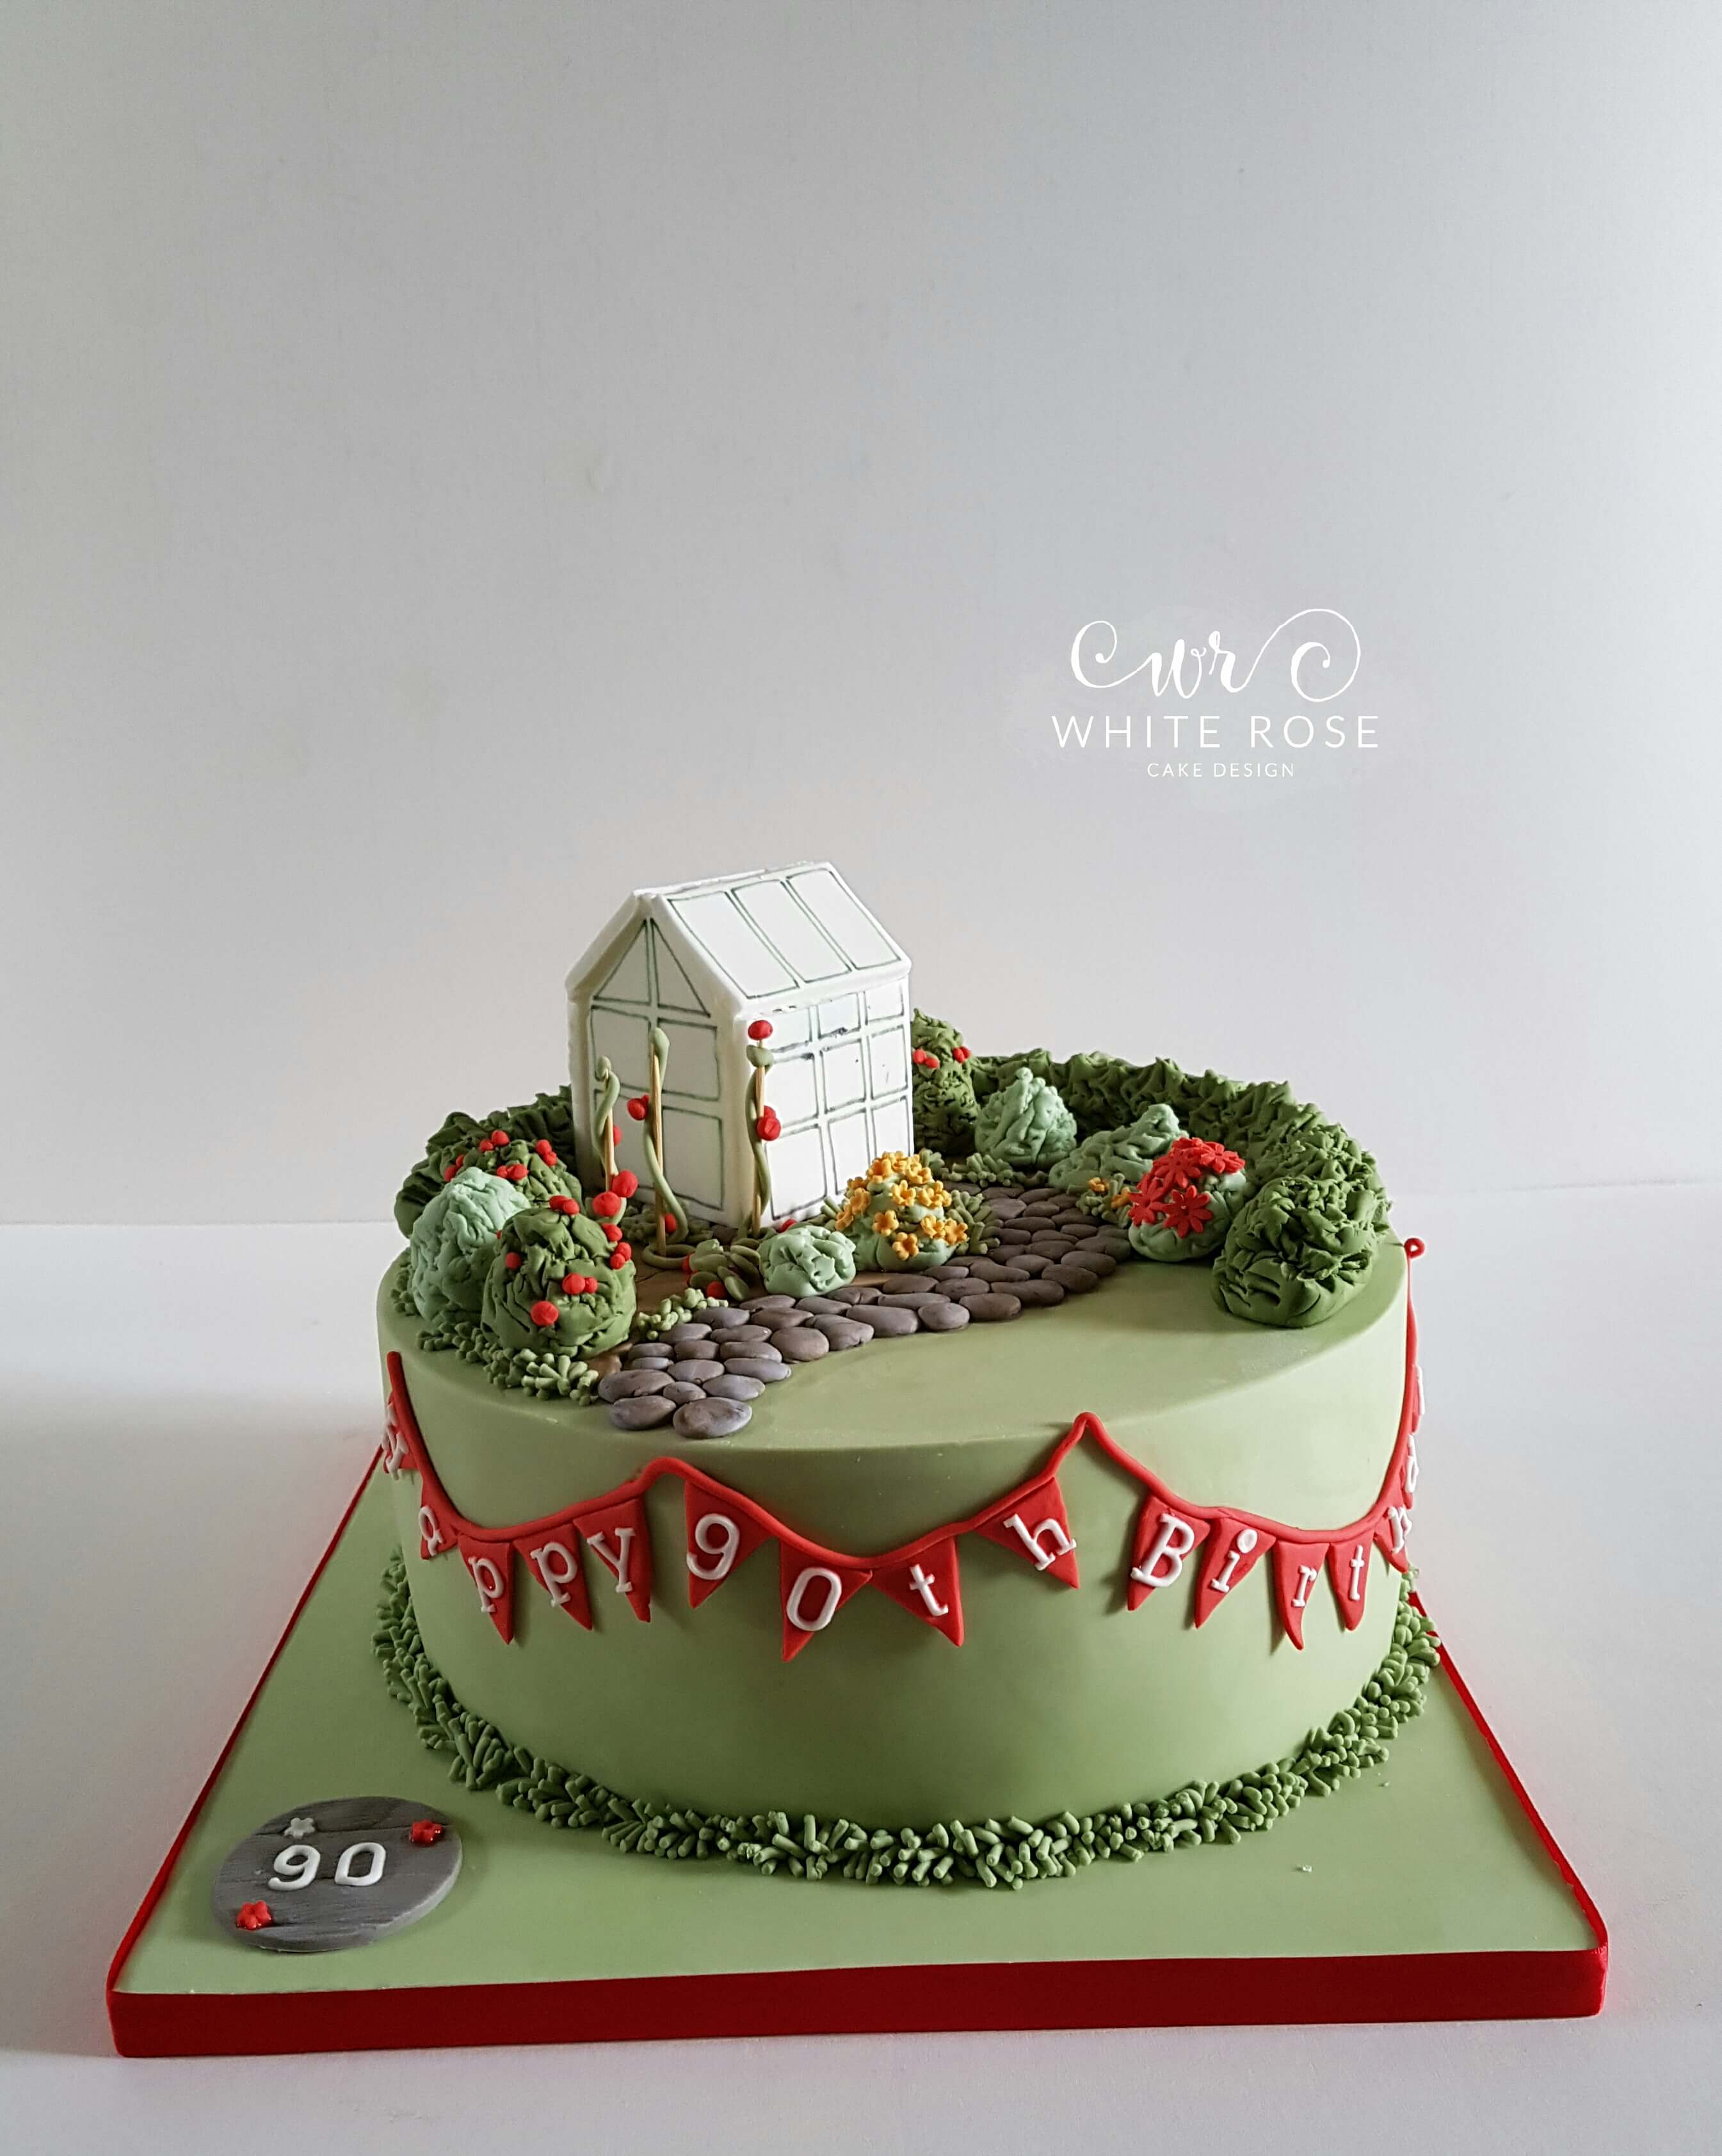 Gardening Themed 90th Birthday by White Rose Cake Design in West Yorkshire